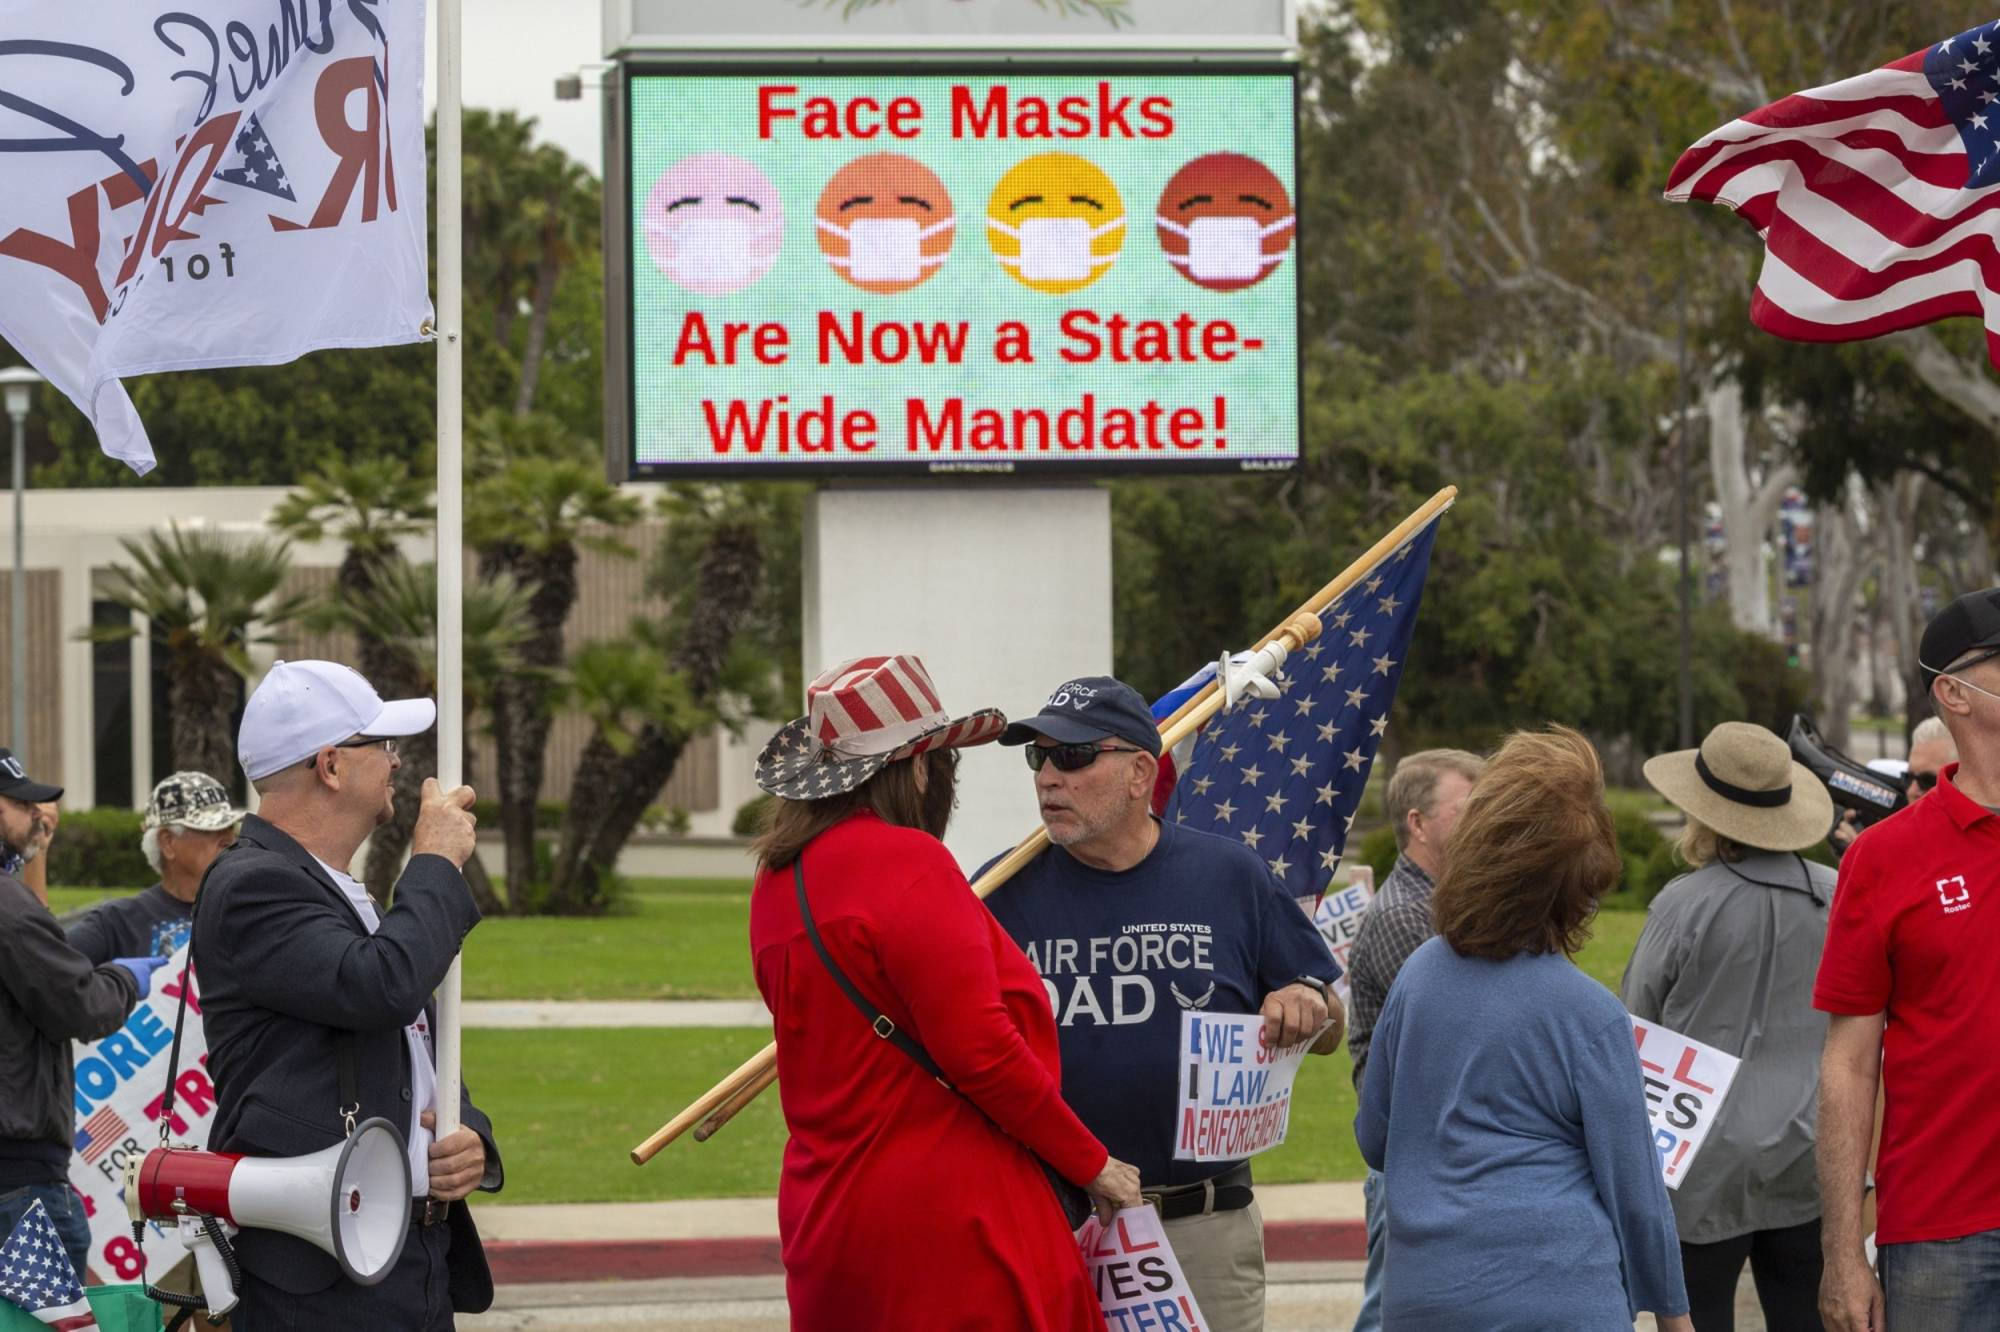 Despite growing evidence that face masks stem the spread of the coronavirus, many Americans shun them. | GETTY IMAGES / VIA BLOOMBERG